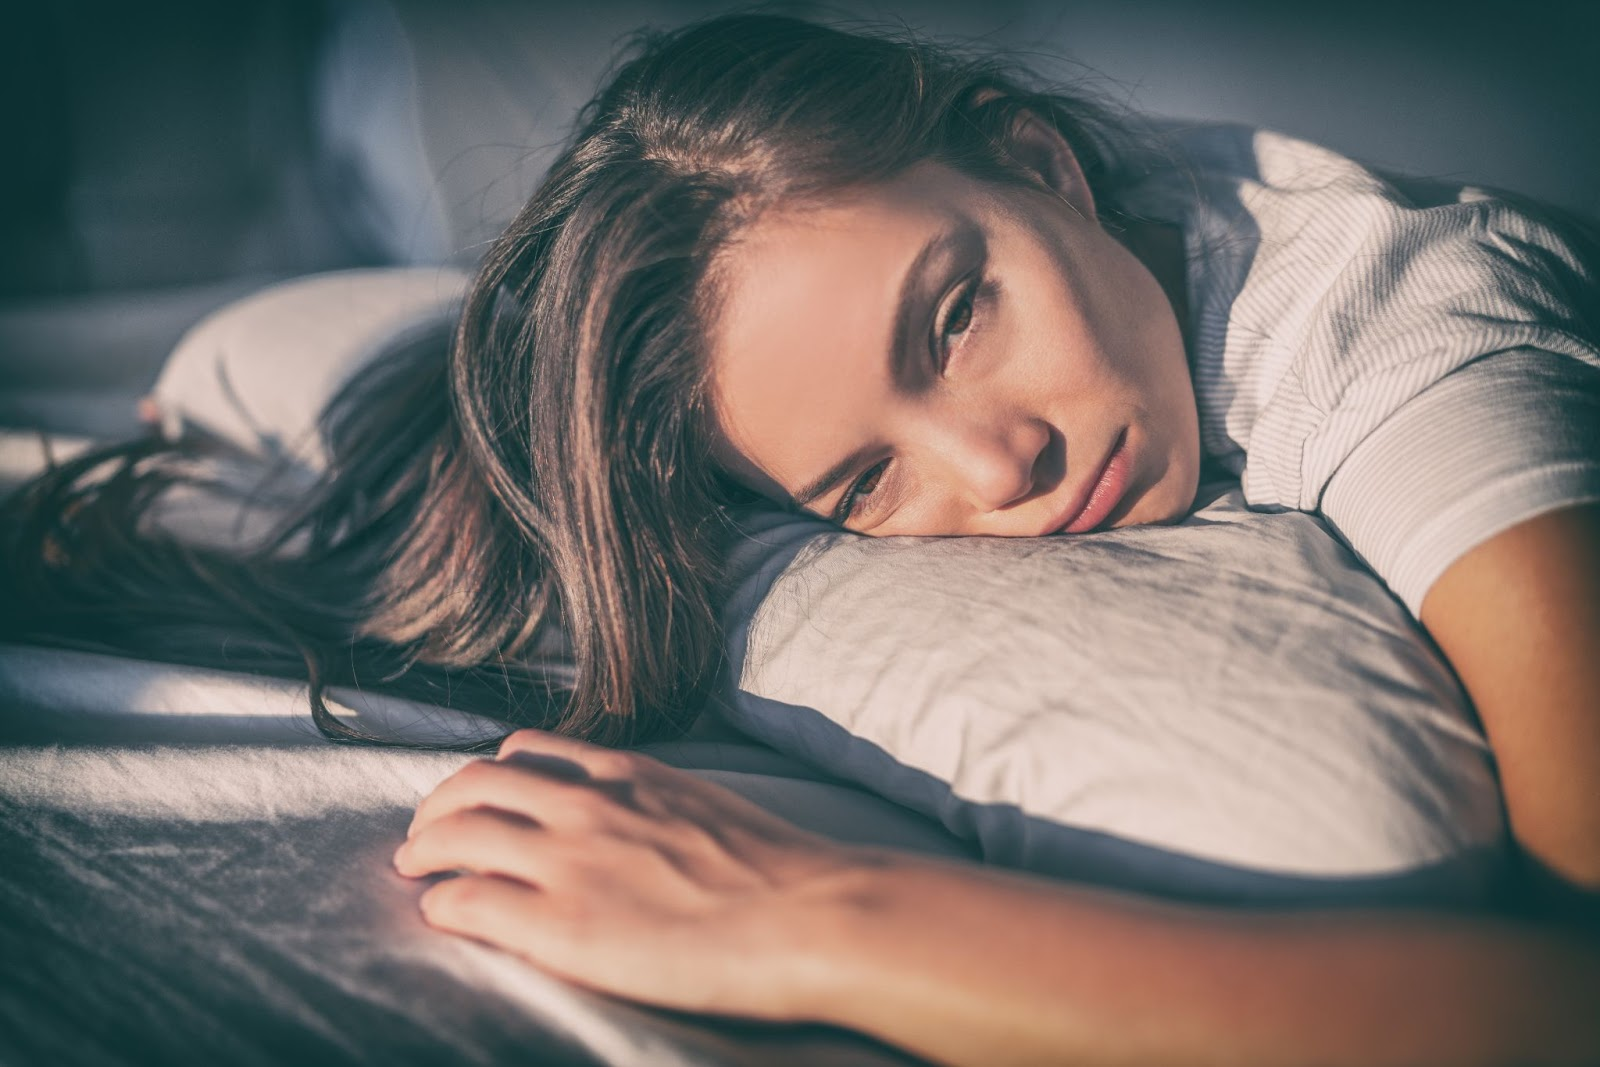 Sleeping during the day: A woman lies in bed looking tired